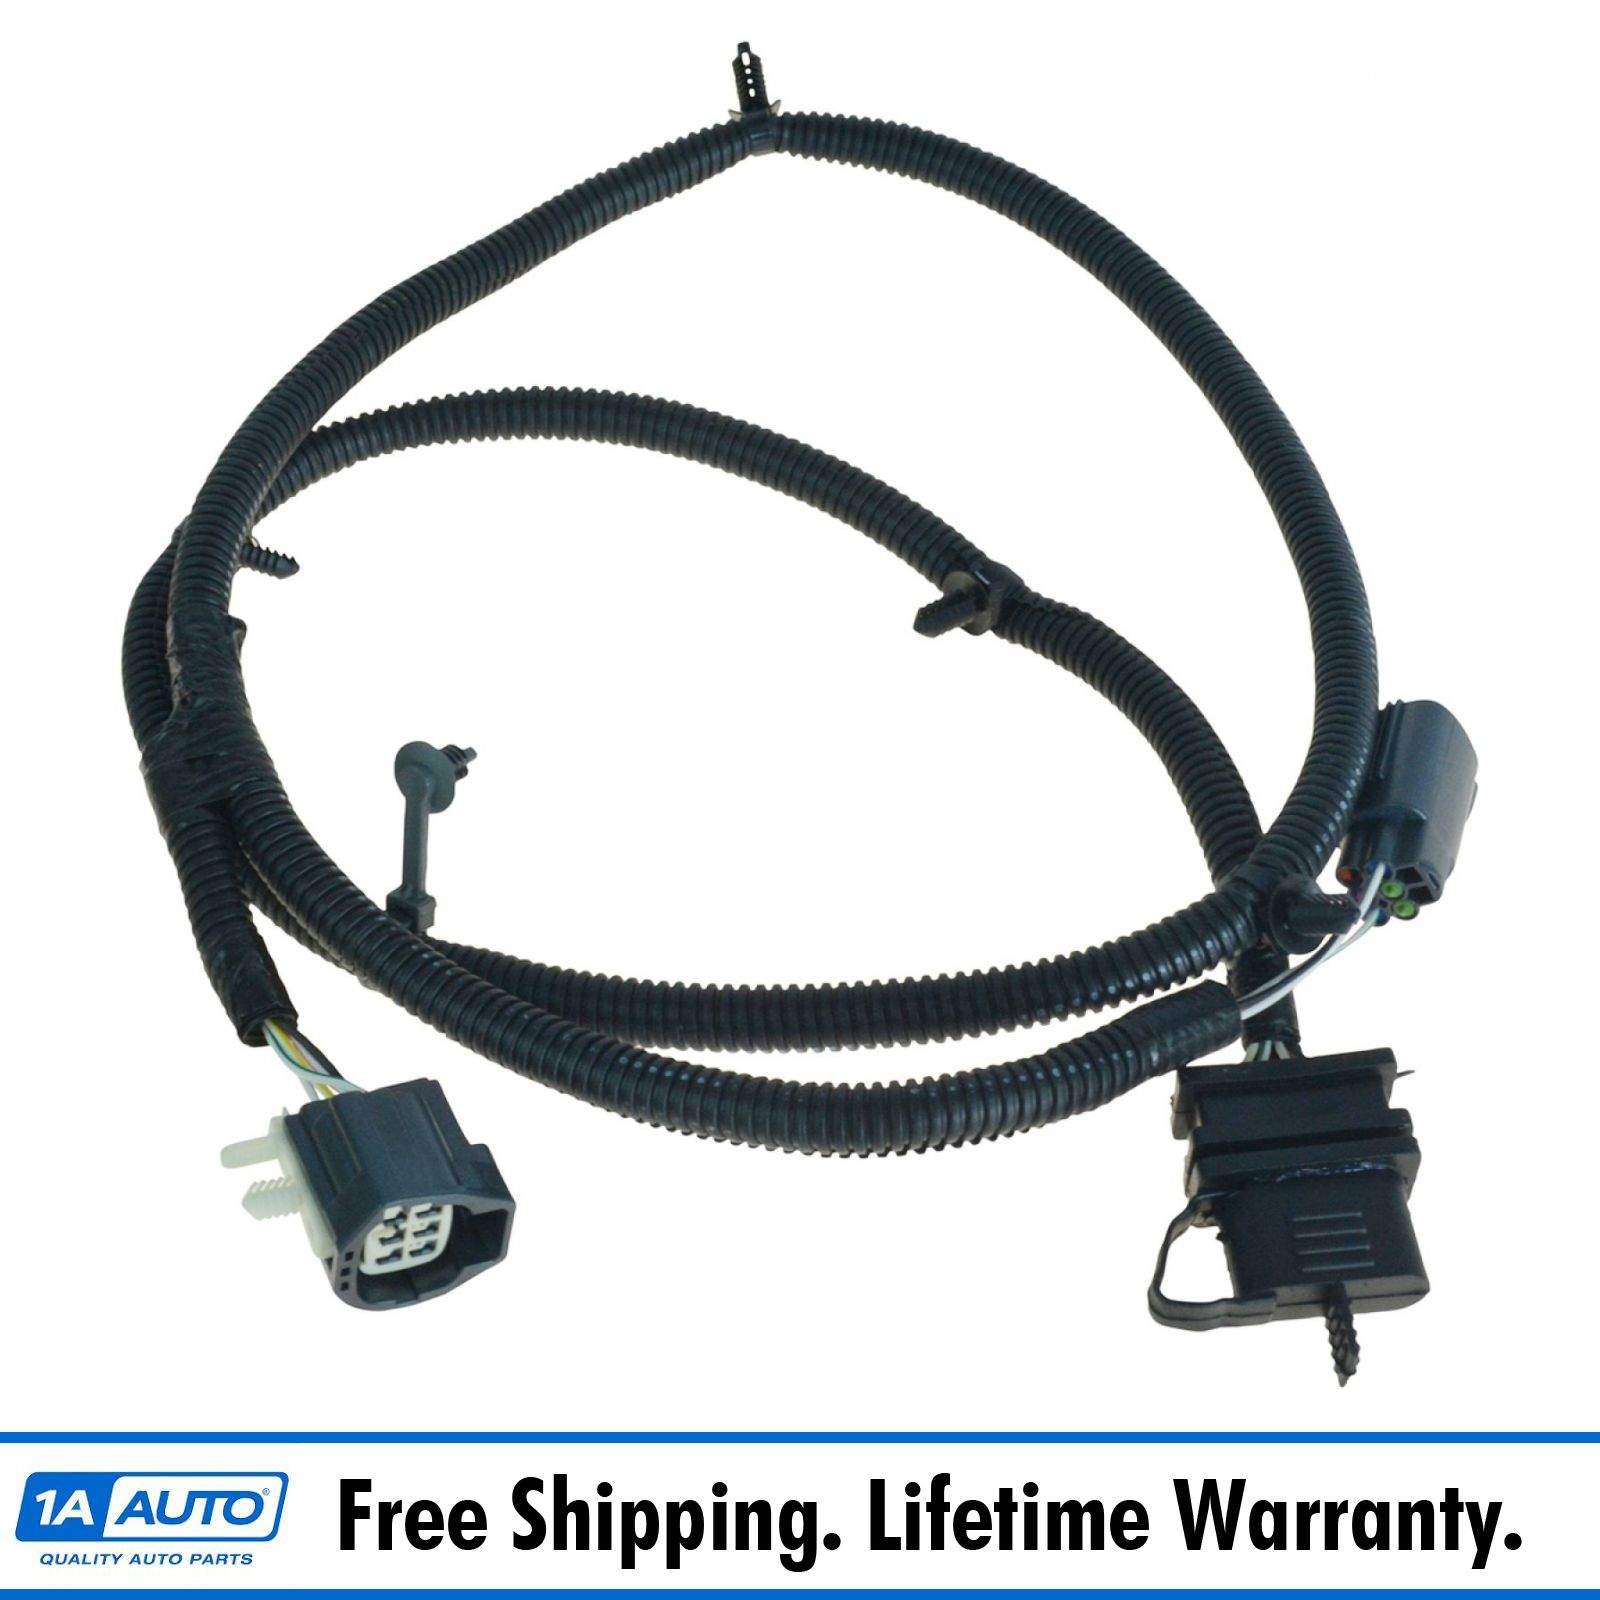 Jeep Yj Wiring Harness Ebay Simple Electrical Diagram Pontiac Oem 68064400aa 4 Way Tow Trailer Plug In For 11 15 Grand Am